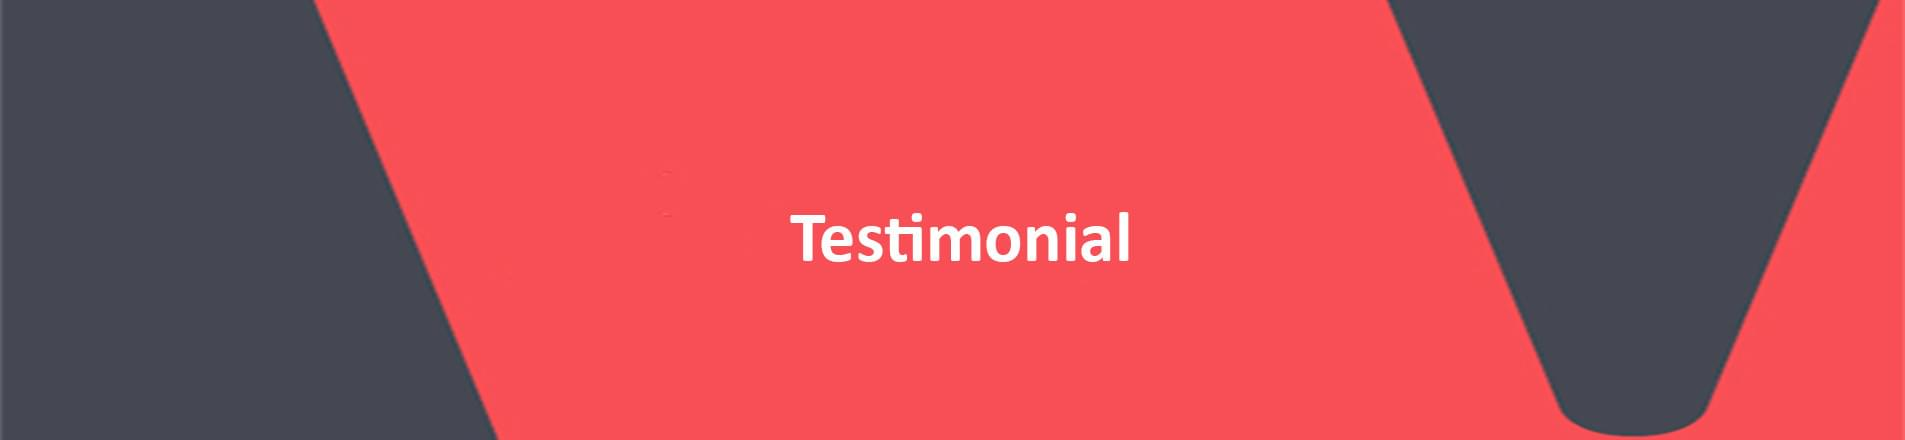 the word testimonial on the red VERCIDA branded background